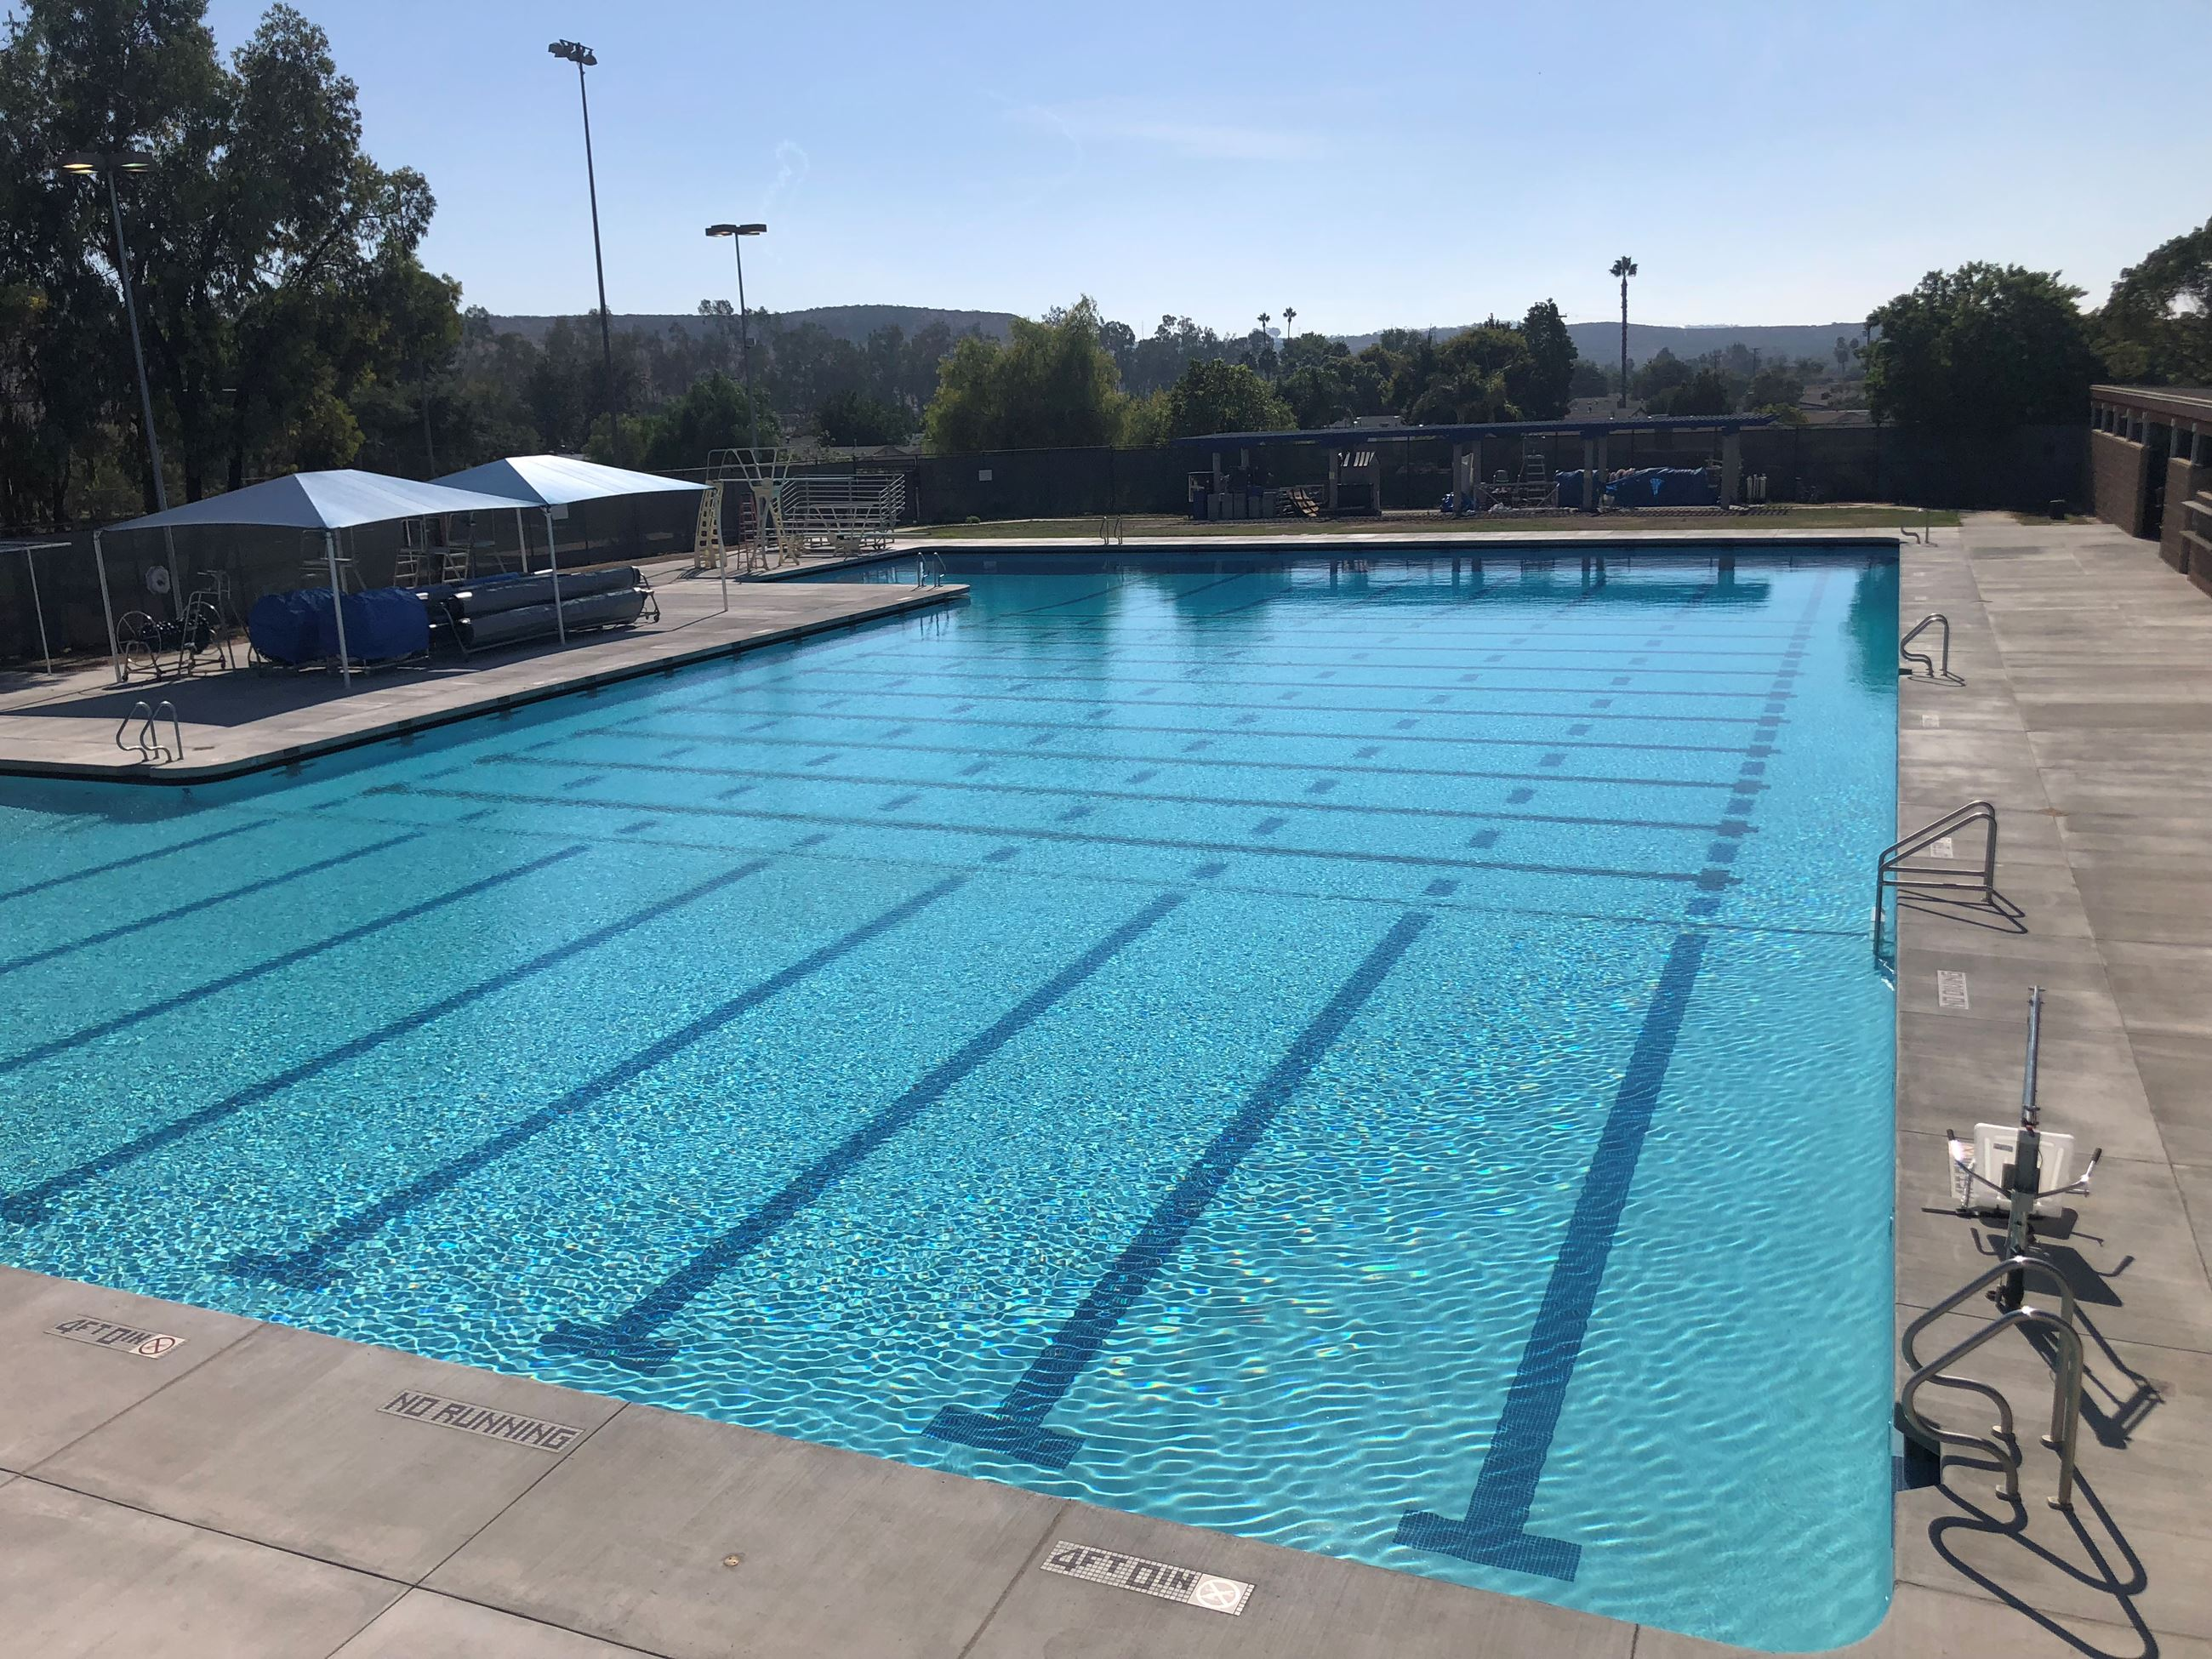 Swim Center Poway Ca Official Website